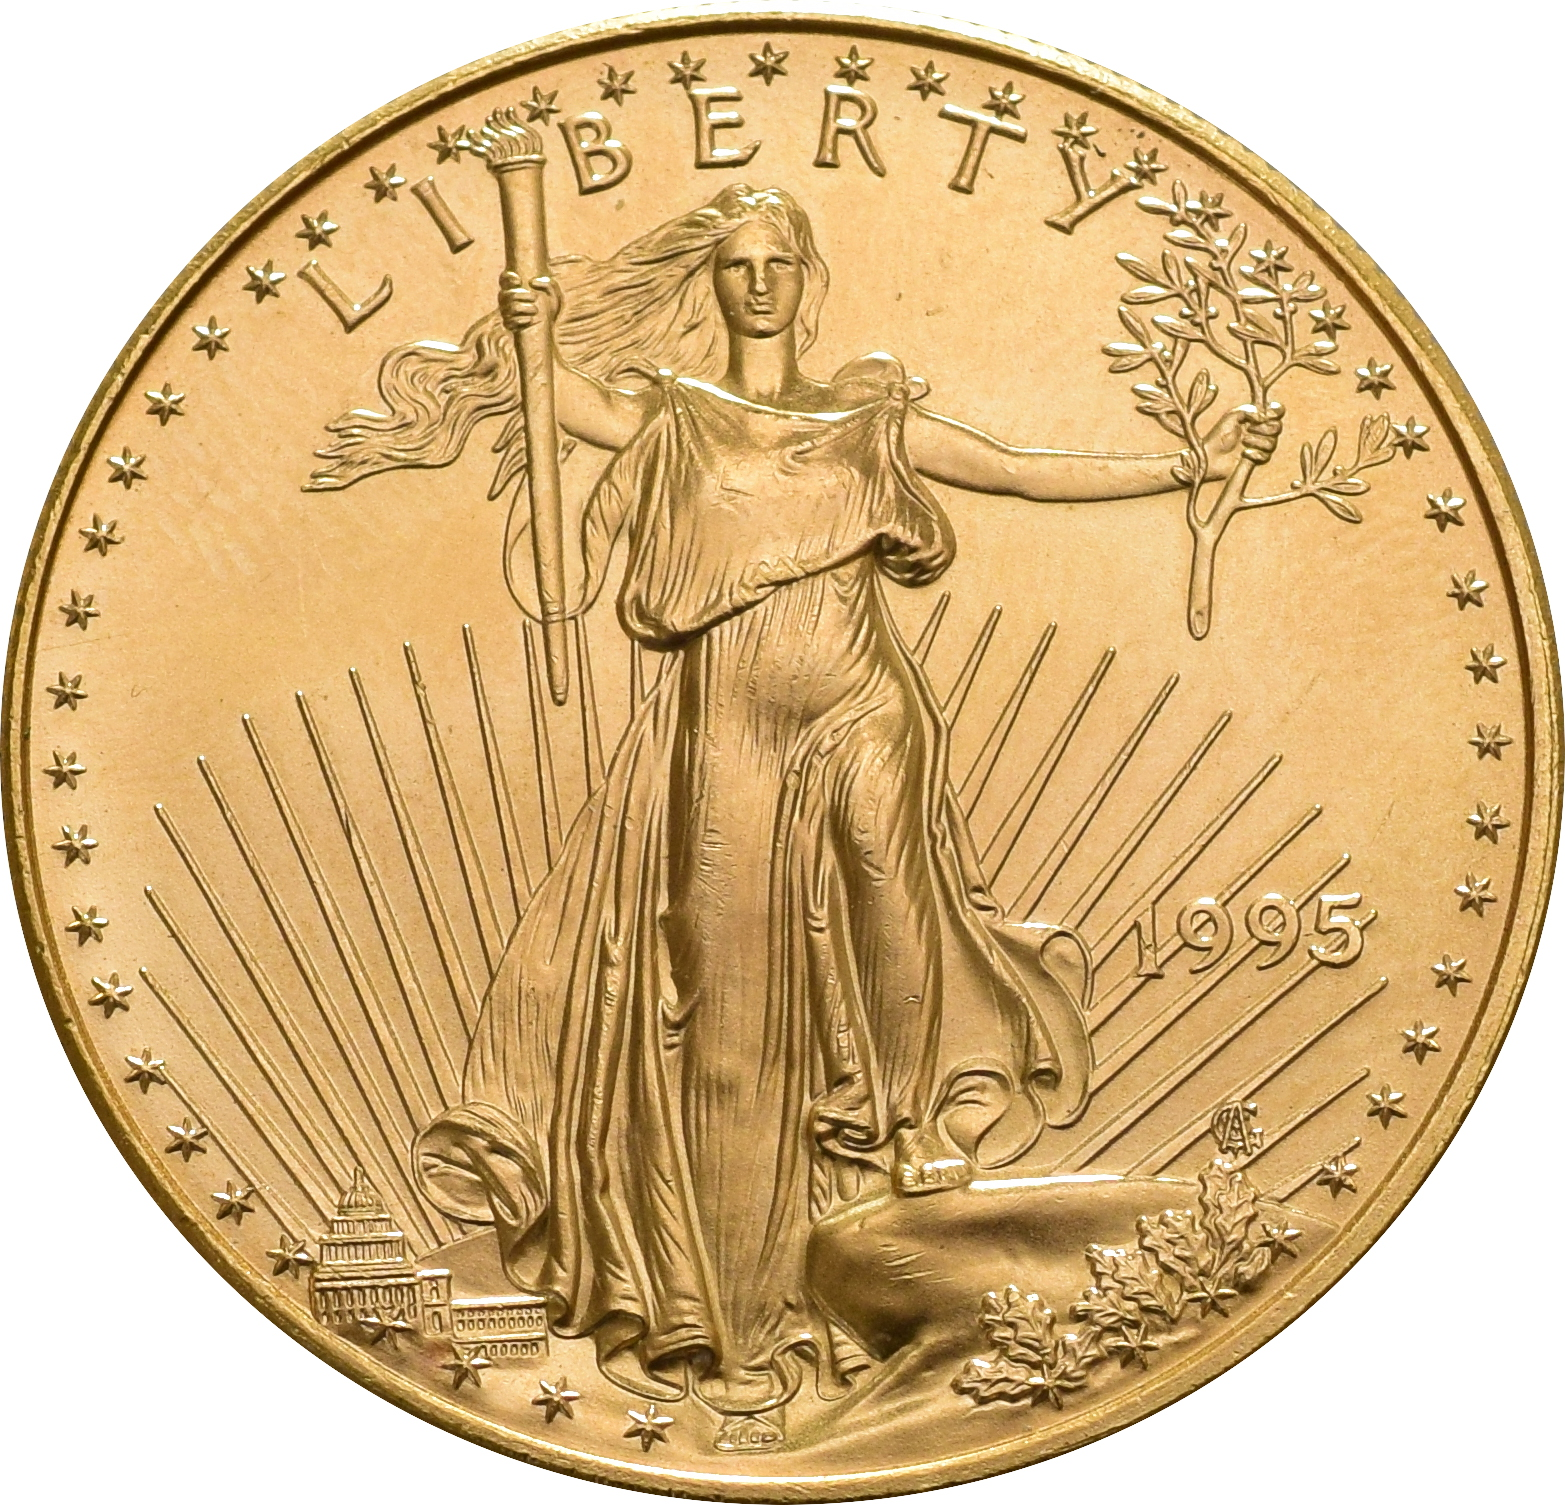 1995 1oz American Eagle Gold Coin 163 1 122